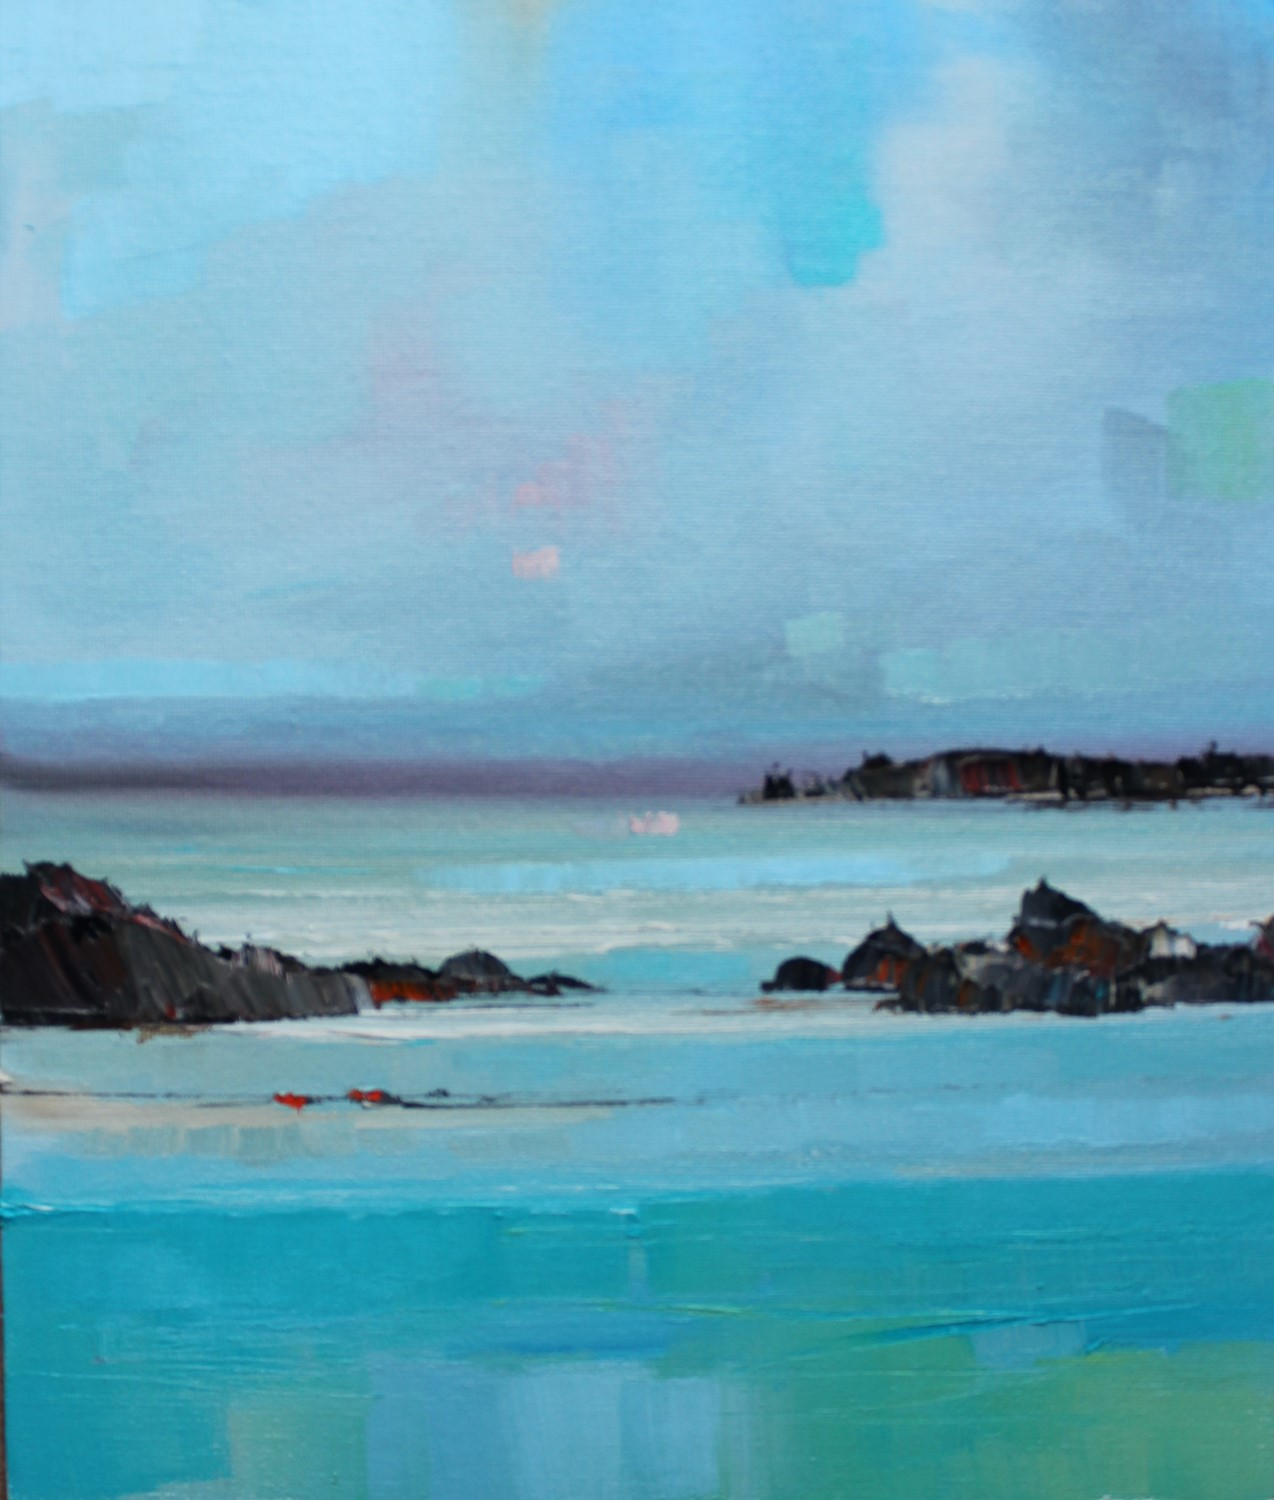 'On Wet Sands' by artist Rosanne Barr